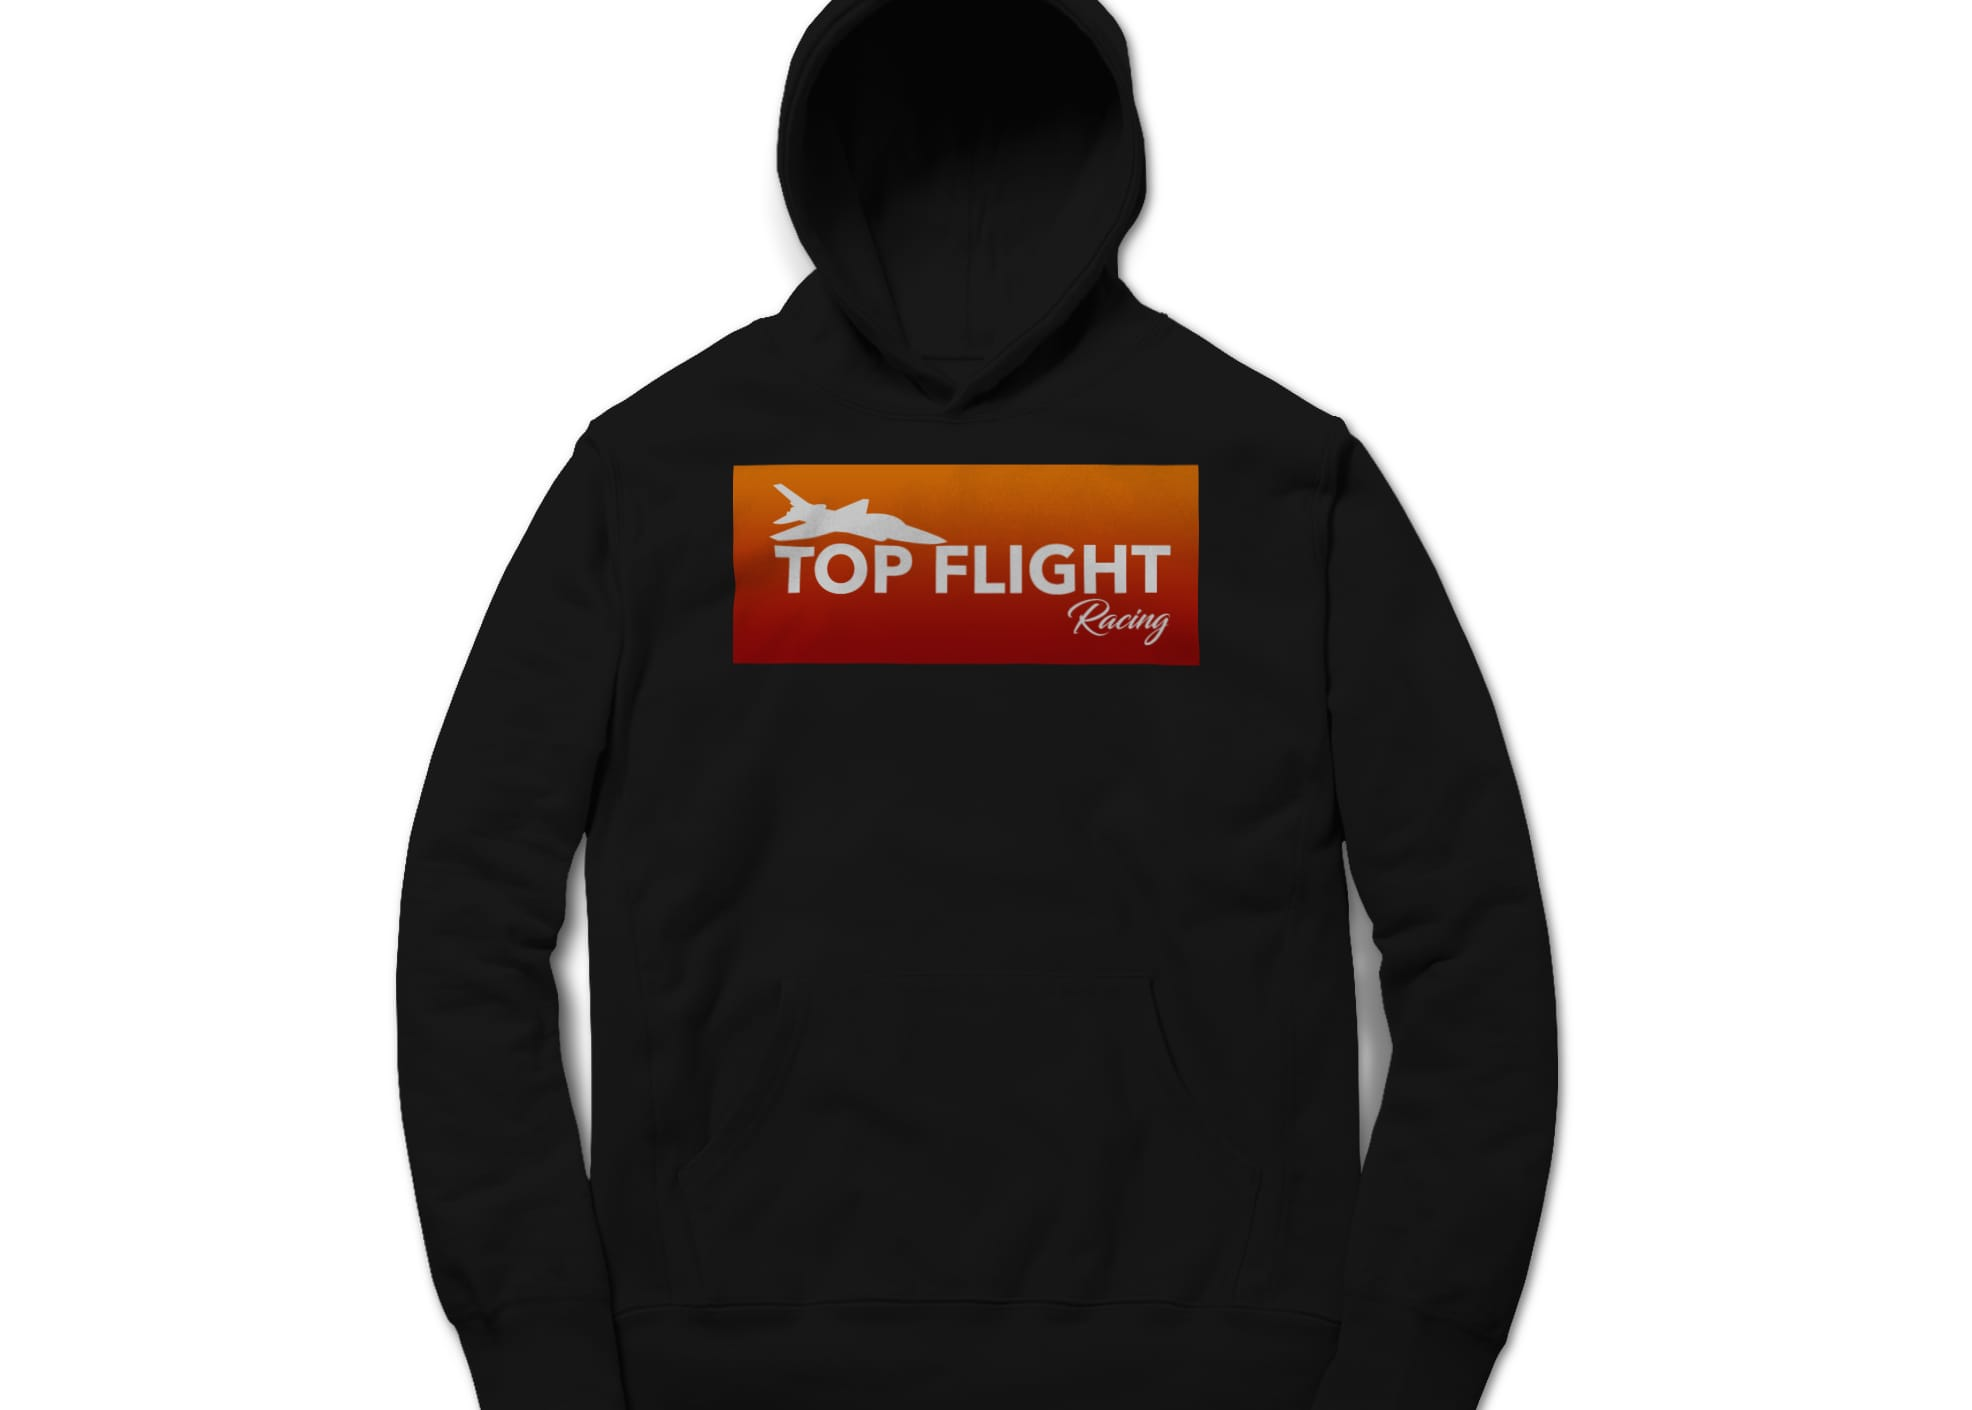 Serbie topflight1 1592797113